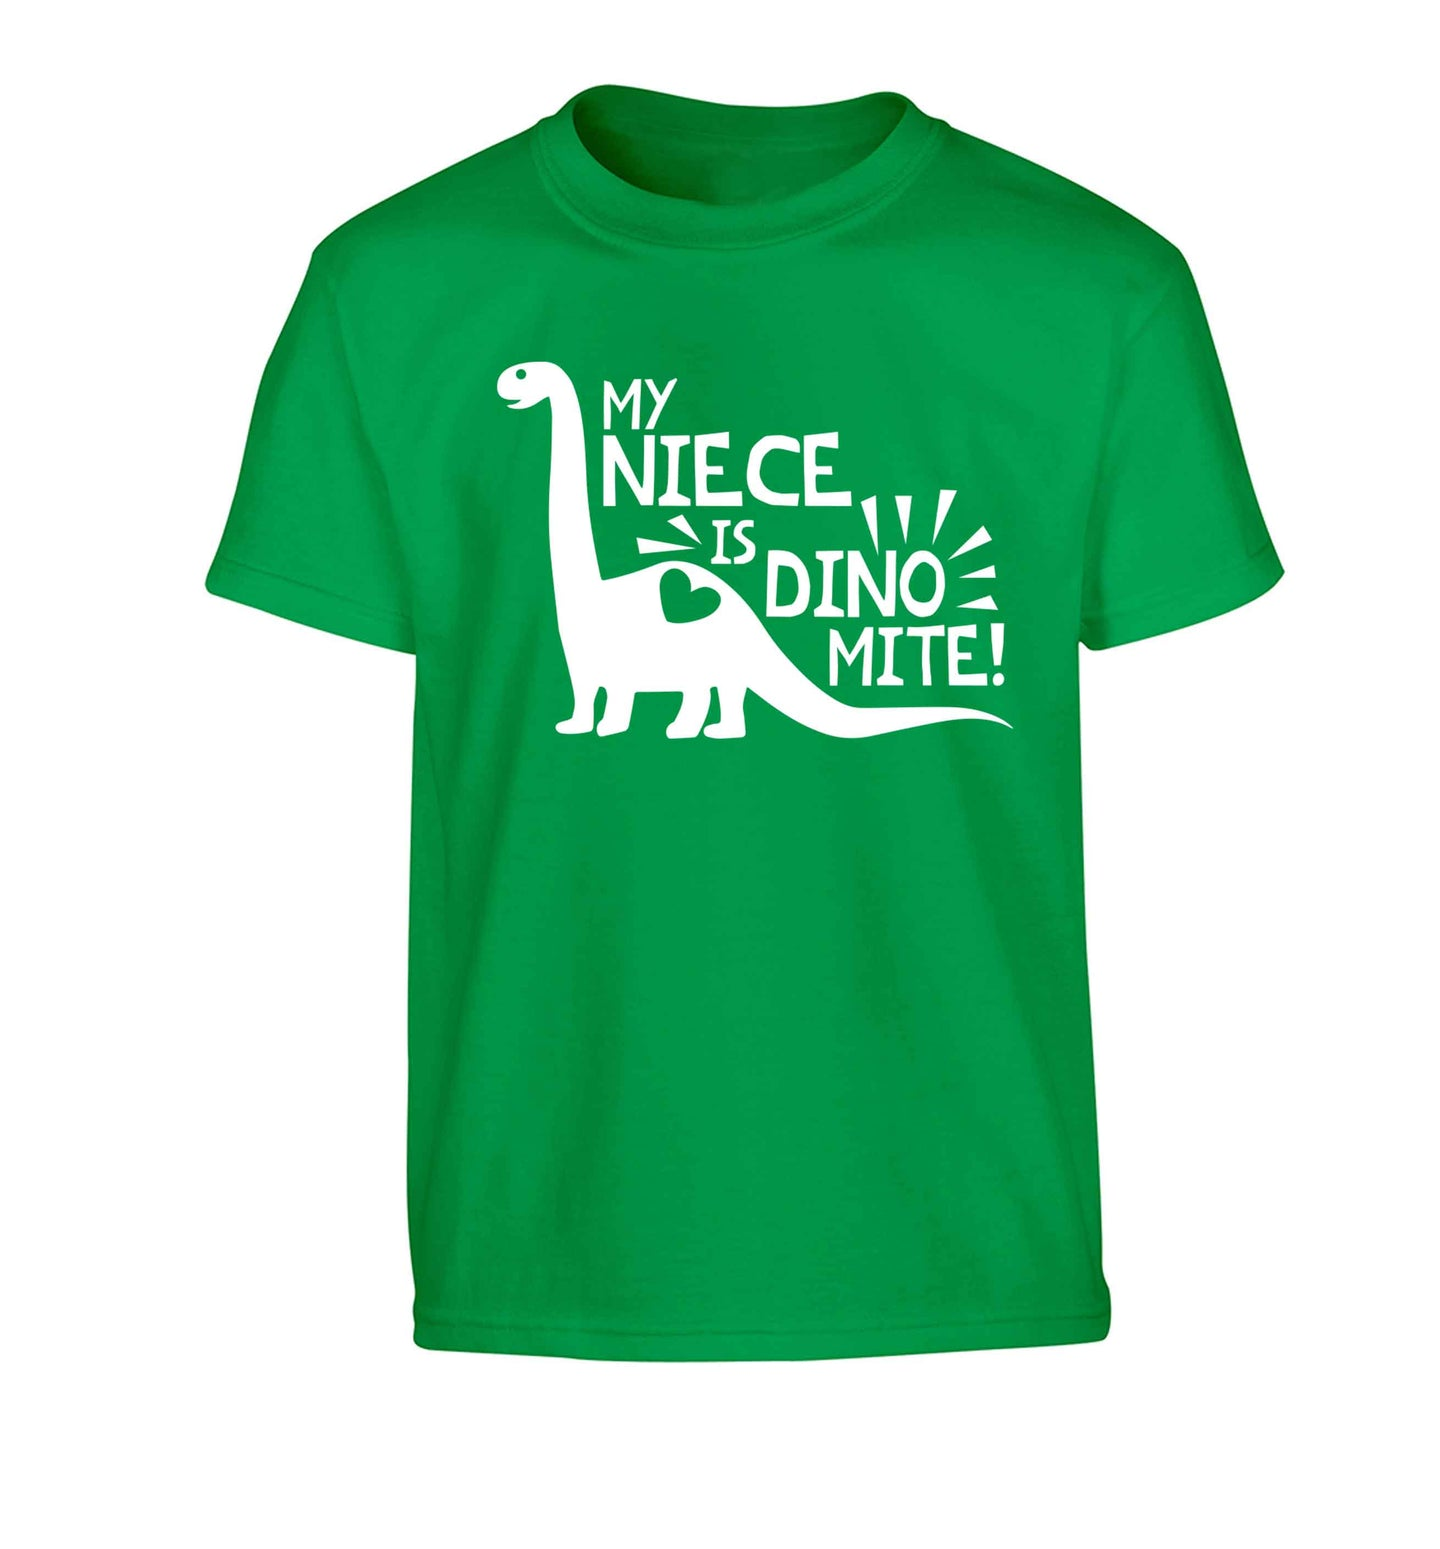 My niece is dinomite! Children's green Tshirt 12-13 Years